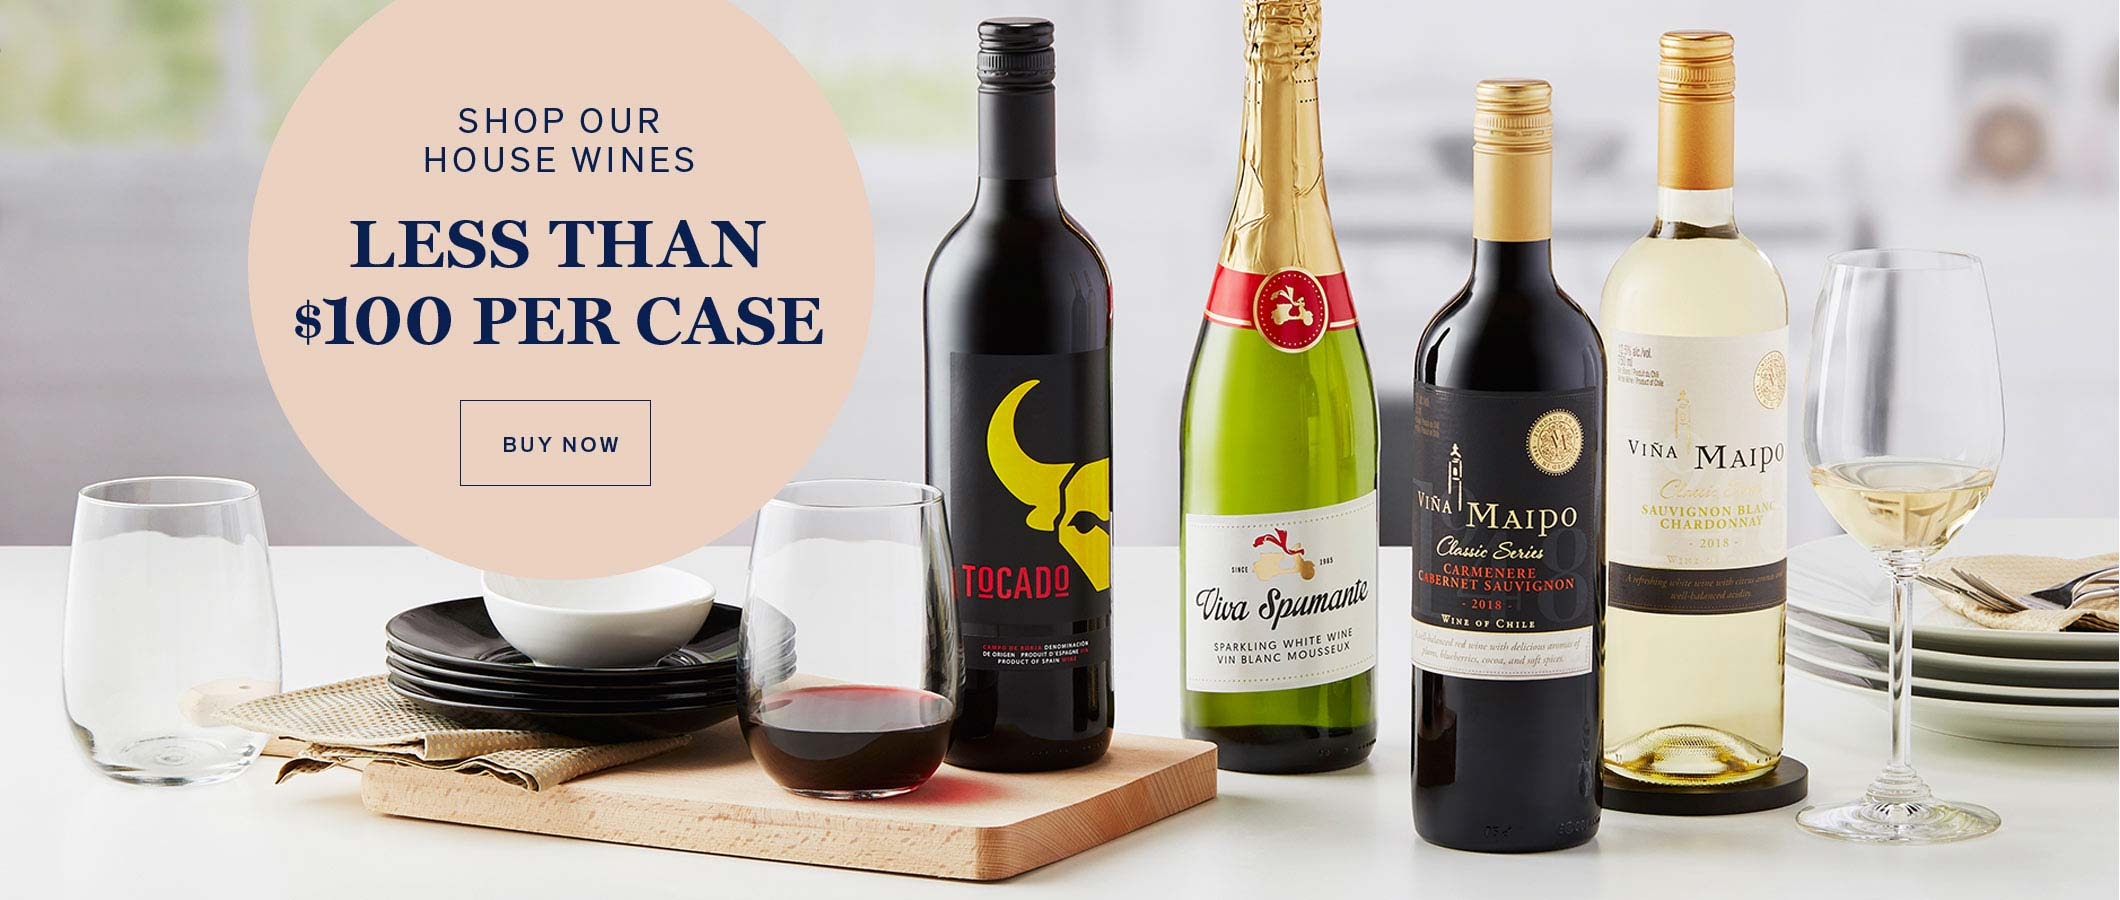 Shop Our House Wines  Less Than $100 Per Case. BUY NOW